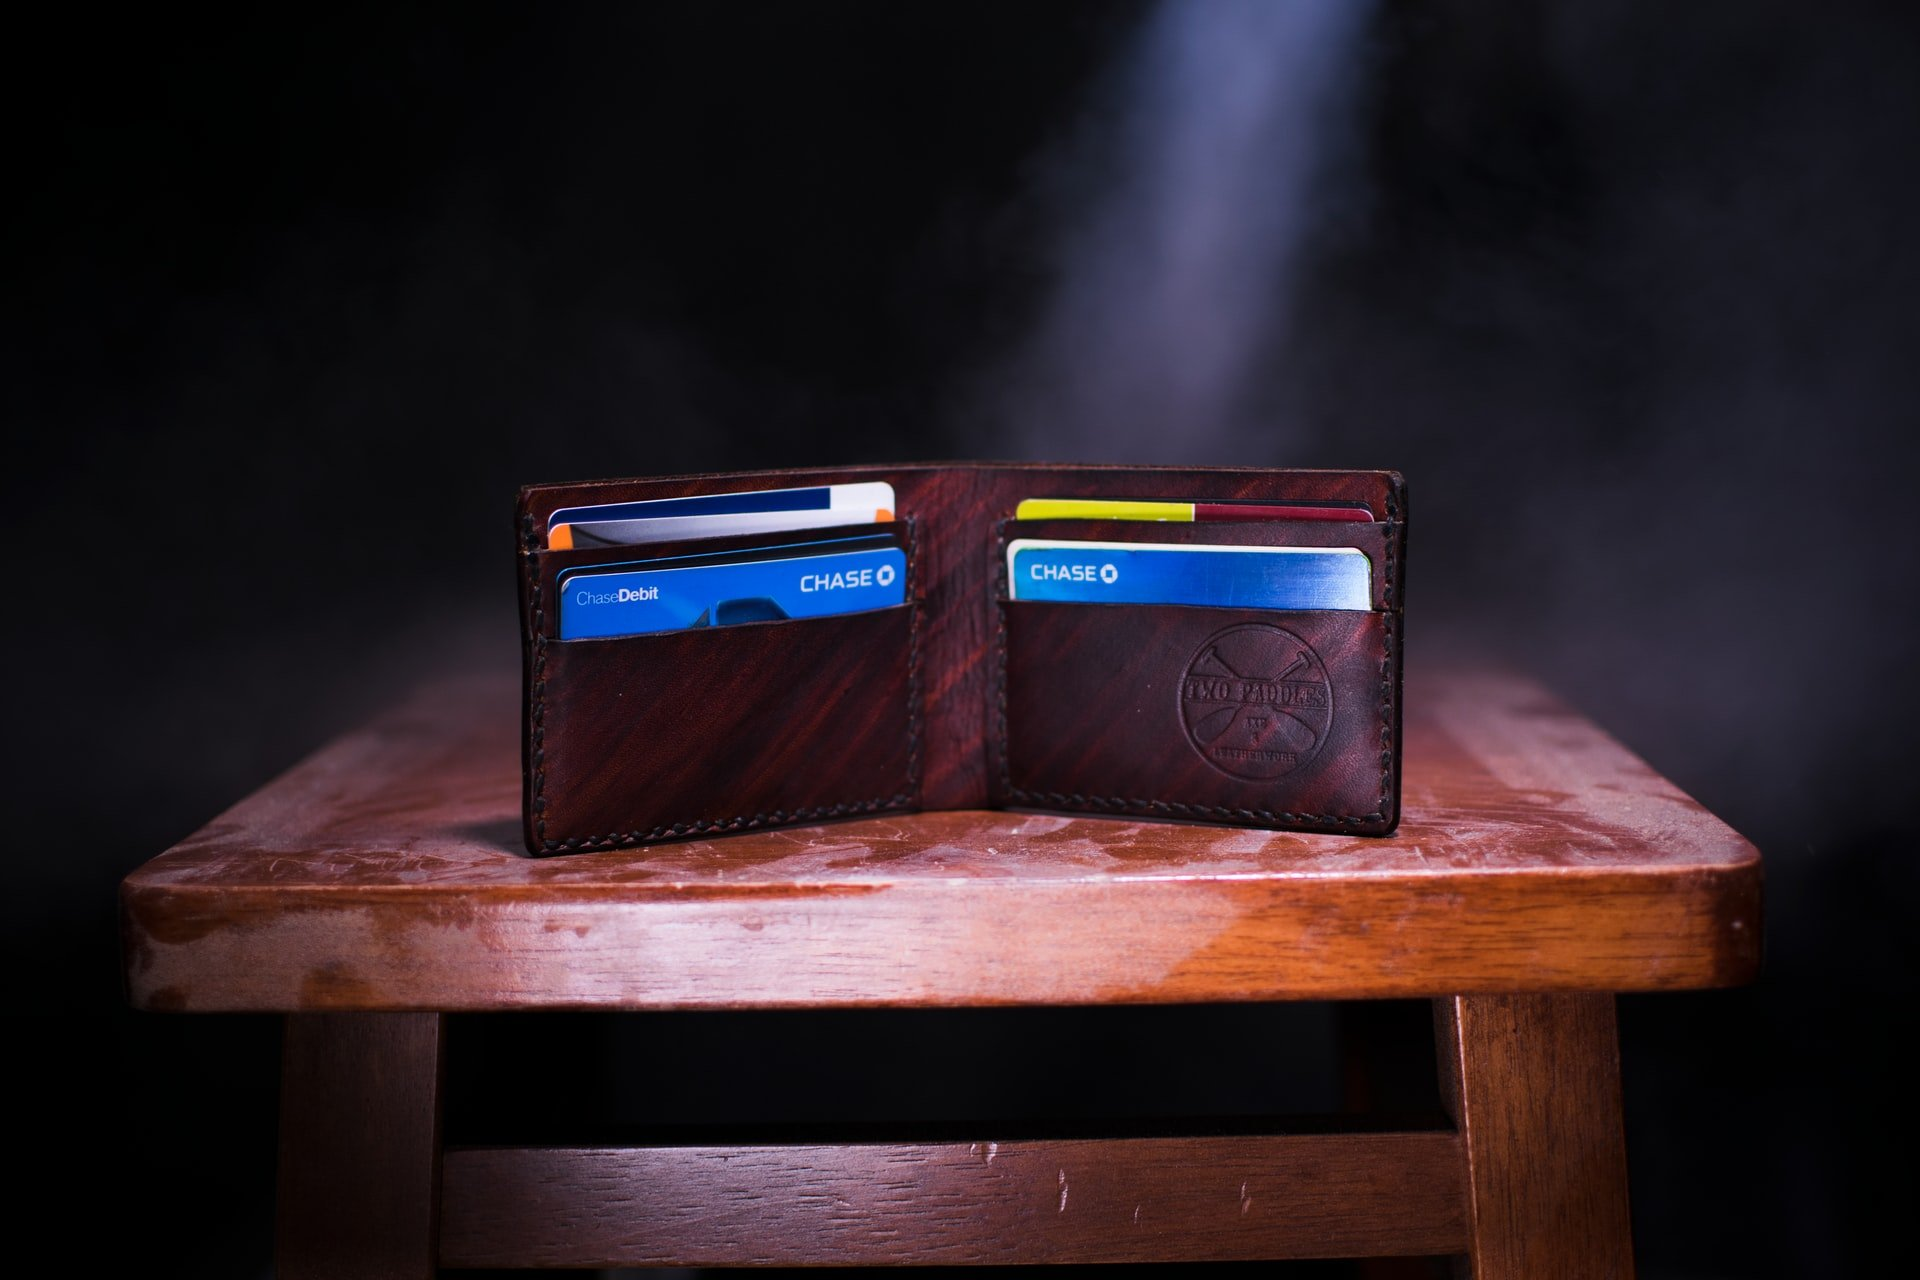 Chase welcome bonus spending minimums automatically extended